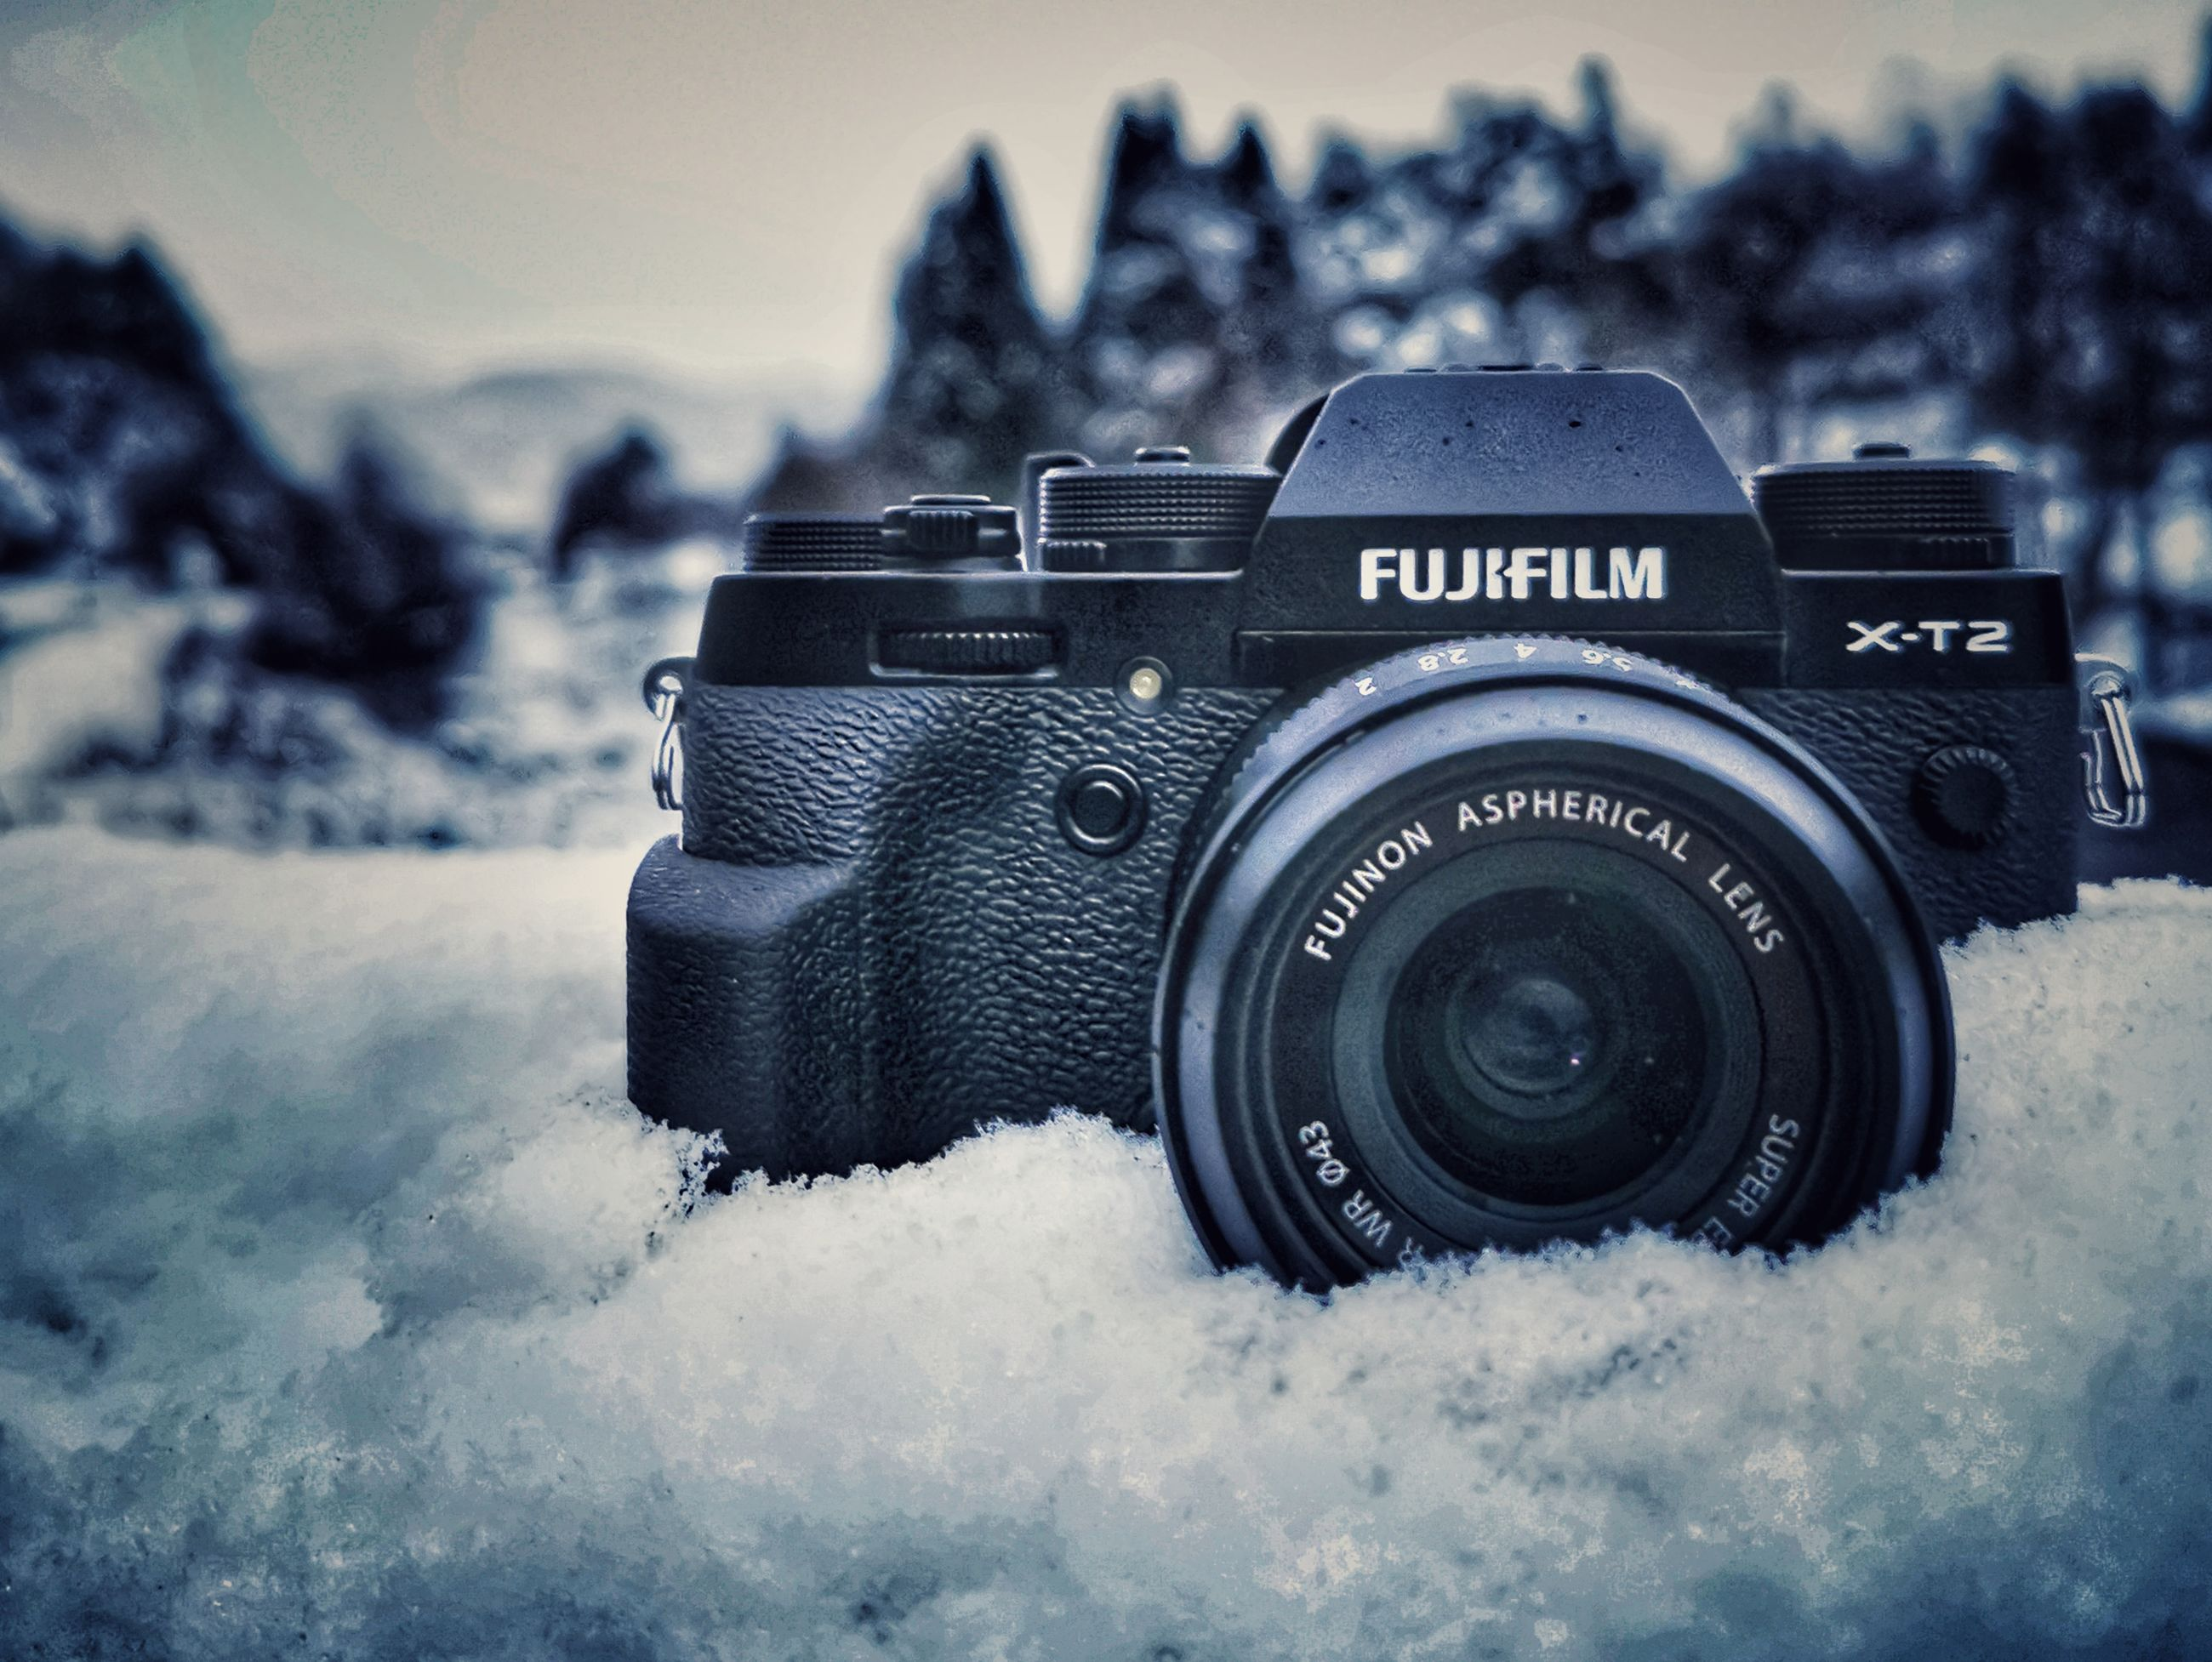 camera - photographic equipment, photography themes, technology, photographic equipment, winter, camera, focus on foreground, close-up, digital camera, snow, no people, lens - optical instrument, cold temperature, day, nature, modern, text, black color, slr camera